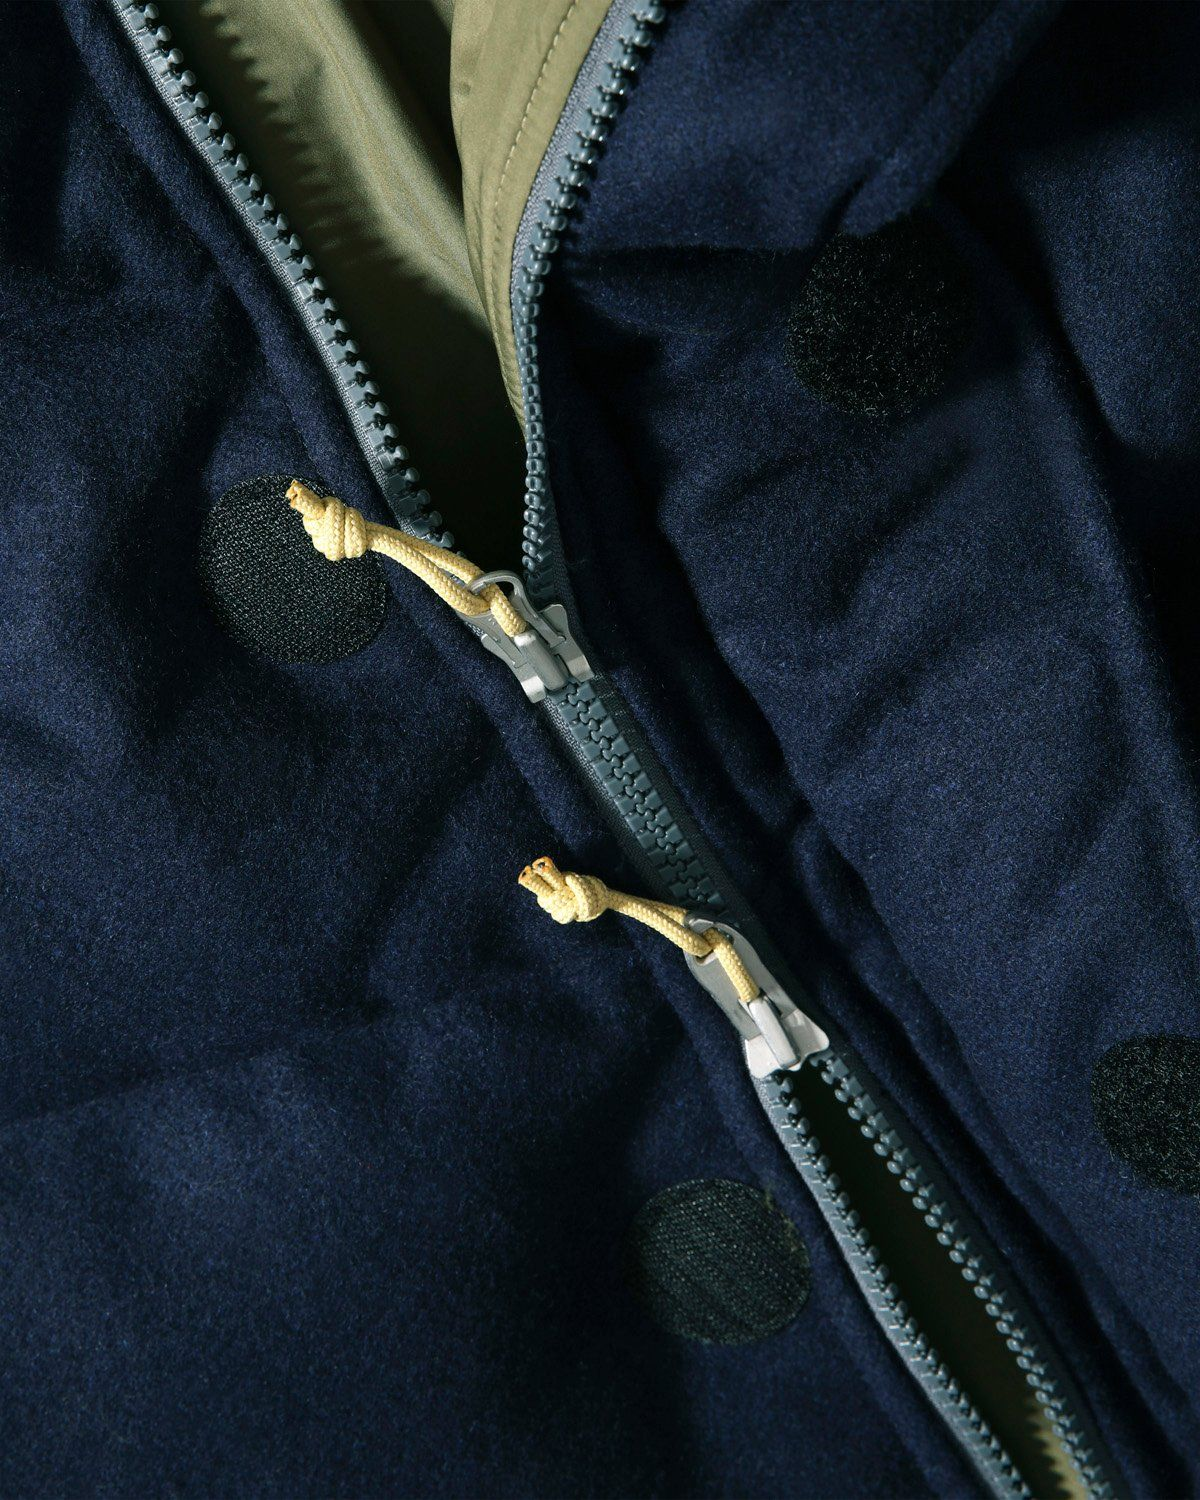 The North Face Brown Label - Larkspur Wool Down Jacket Navy Women - Image 4